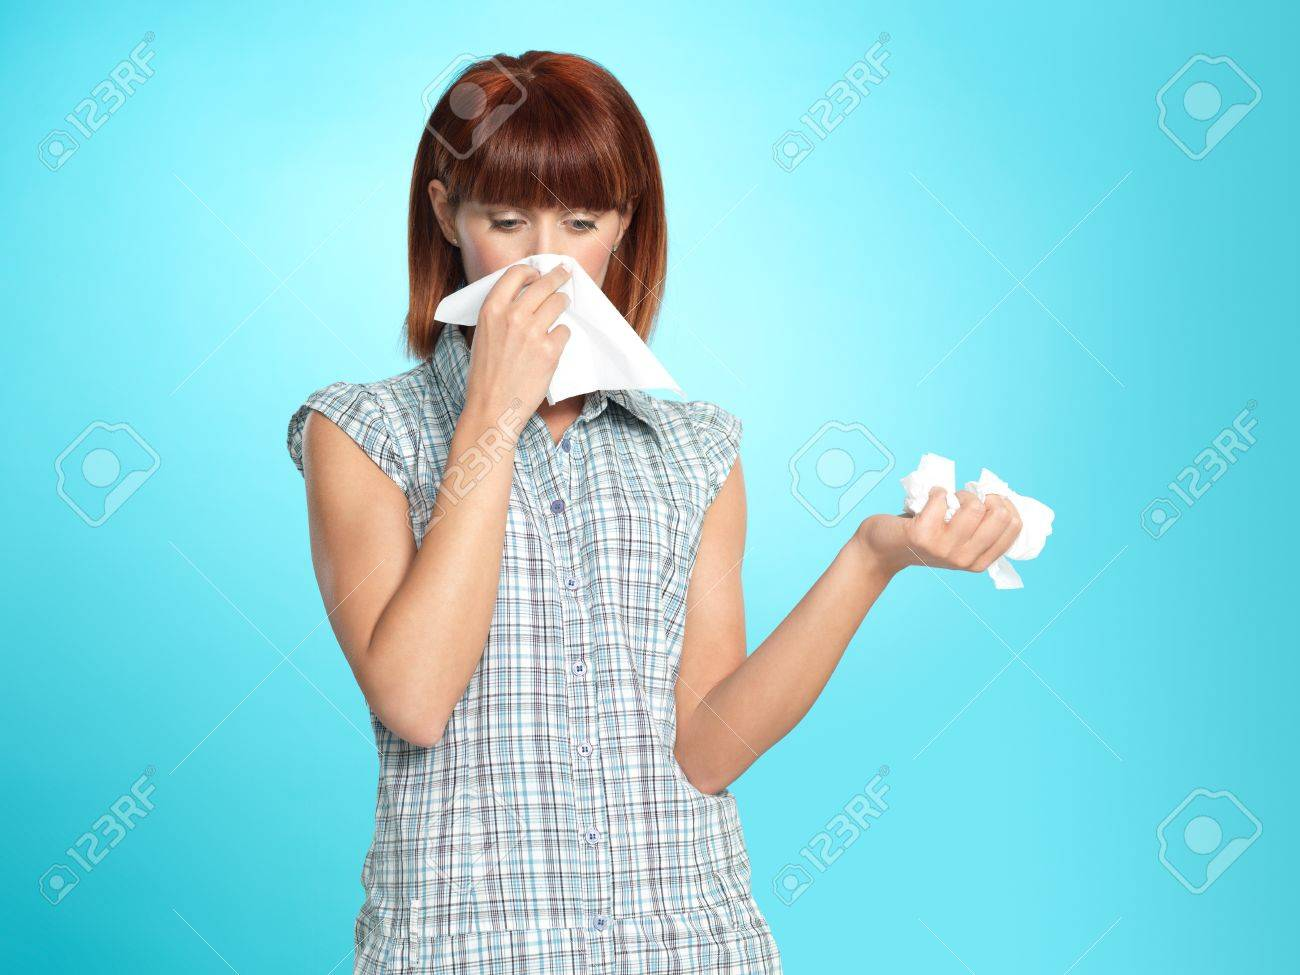 beautiful young woman, crying, blowing her nose, on blue background Stock Photo - 13239939